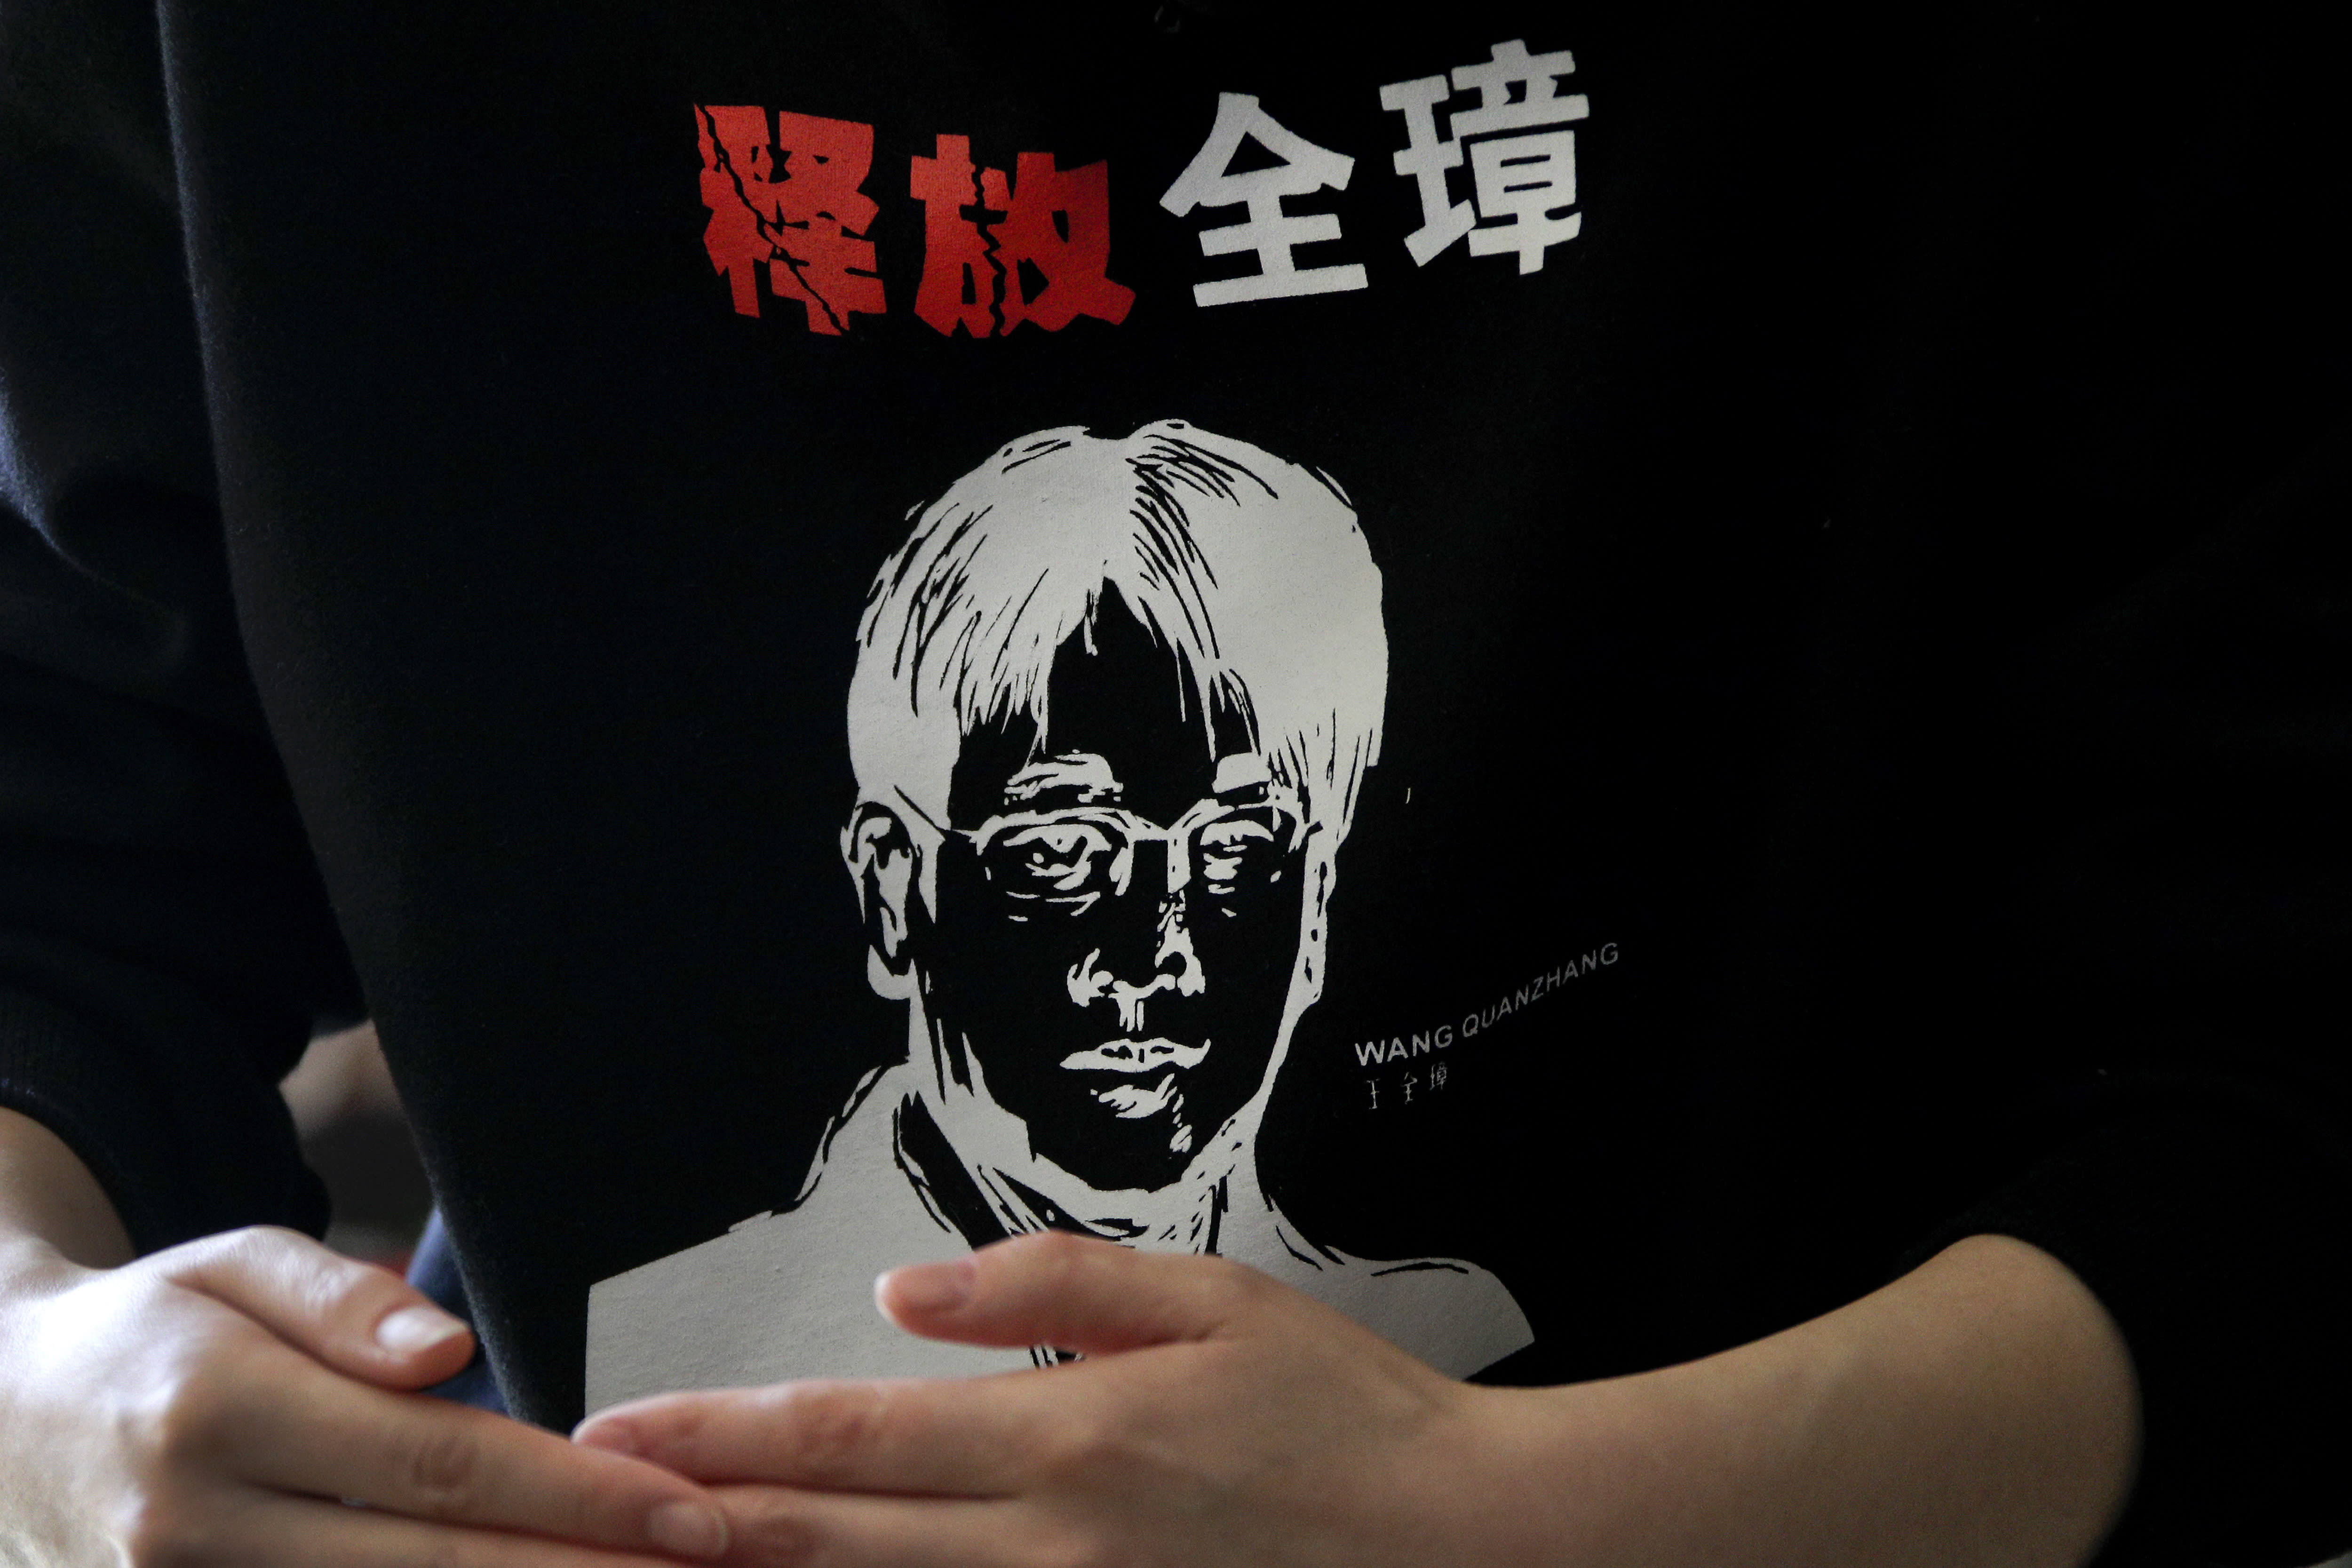 """Li Wenzu, wife of prominent Chinese human rights lawyer Wang Quanzhang wearing a sweater with her husband's portrait printed with the words """"Release Quanzhang"""" speaks at her house in Beijing, Monday, Jan. 28, 2019. Wang was sentenced to 4 and half years in prison on the charge of subversion of state power Monday, more than three years after he was detained in a wide-ranging crackdown on the legal profession. (AP Photo/Andy Wong)"""